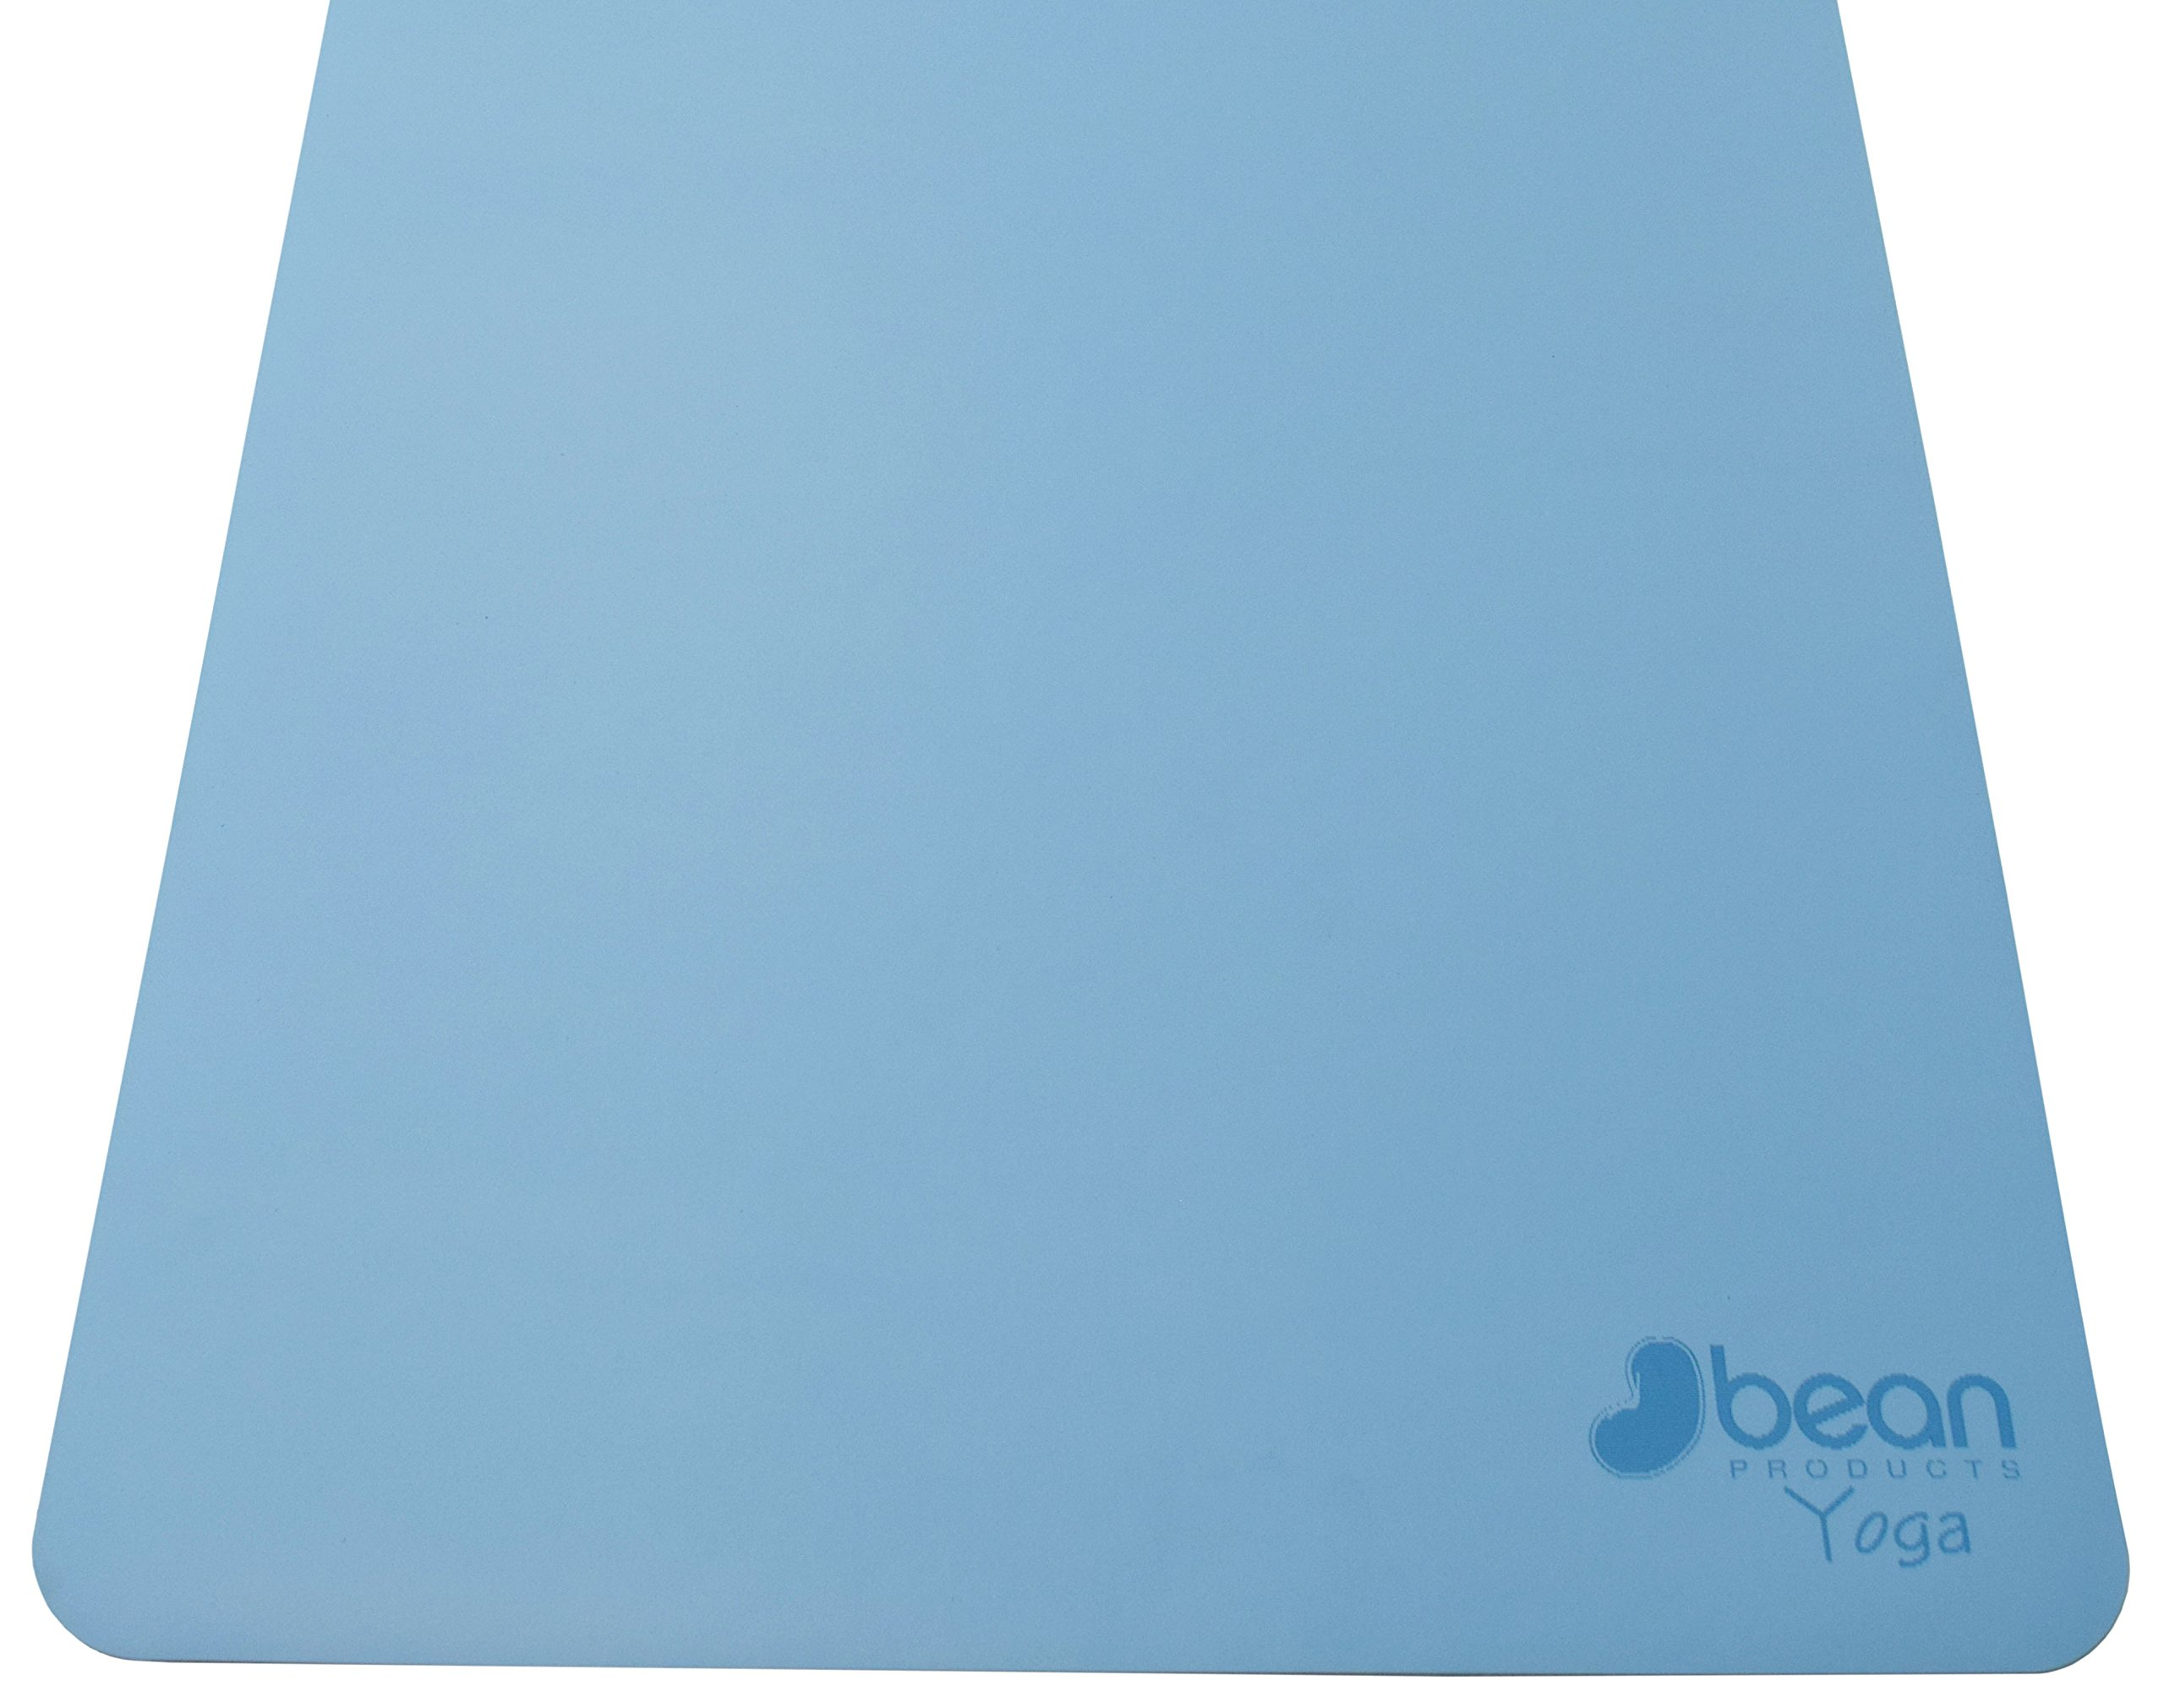 Bean Products Blue Original OMphibian Yoga Mat – The Best Non - Slip (Wet or Dry) Eco-Friendly Natural Rubber Base Yoga Mat from by Bean Products (Image #4)